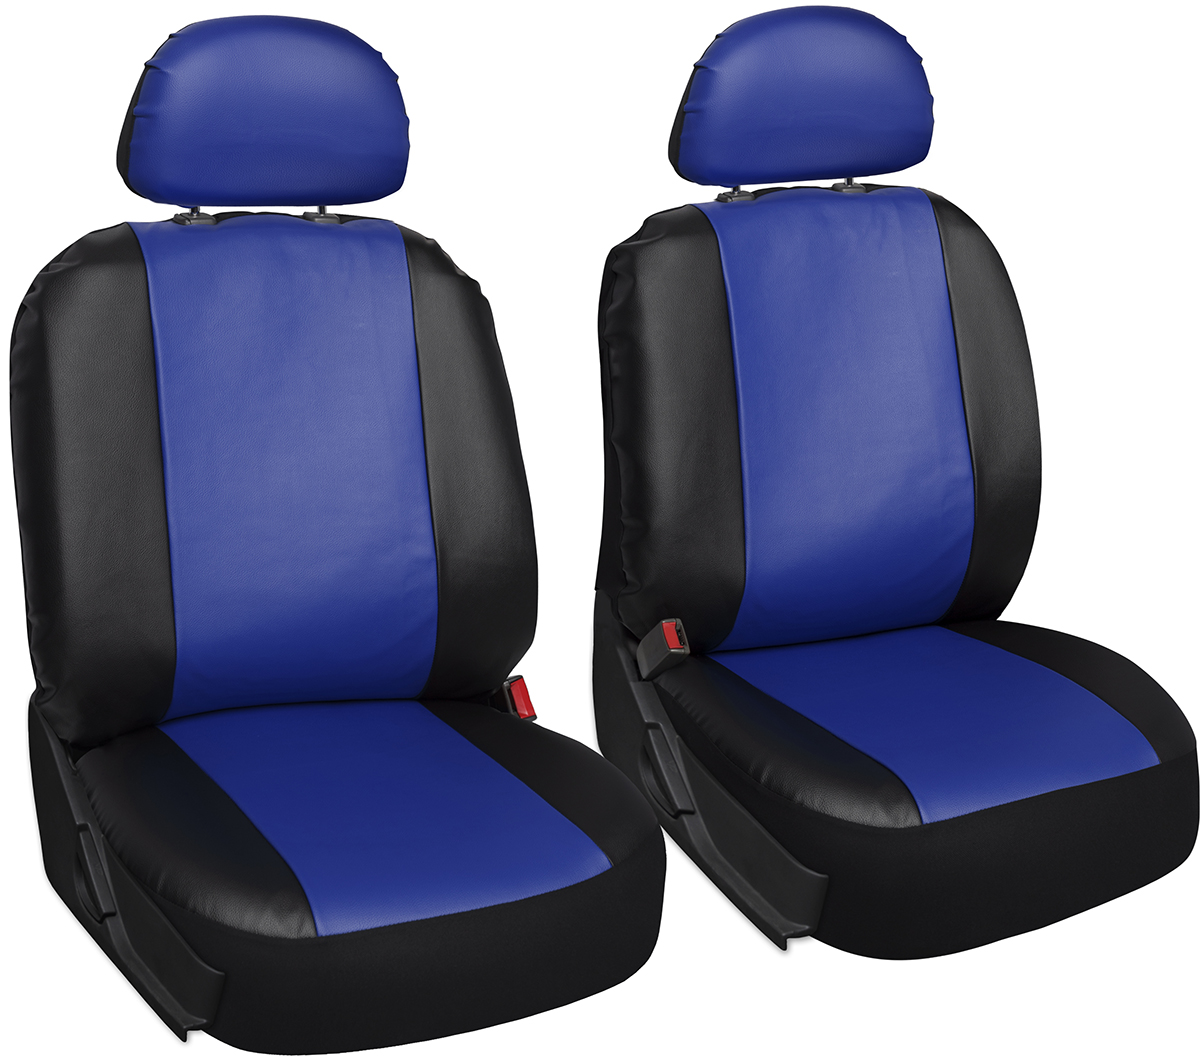 Faux Leather Car Seat Covers Blue Black 6pc Bucket Set W